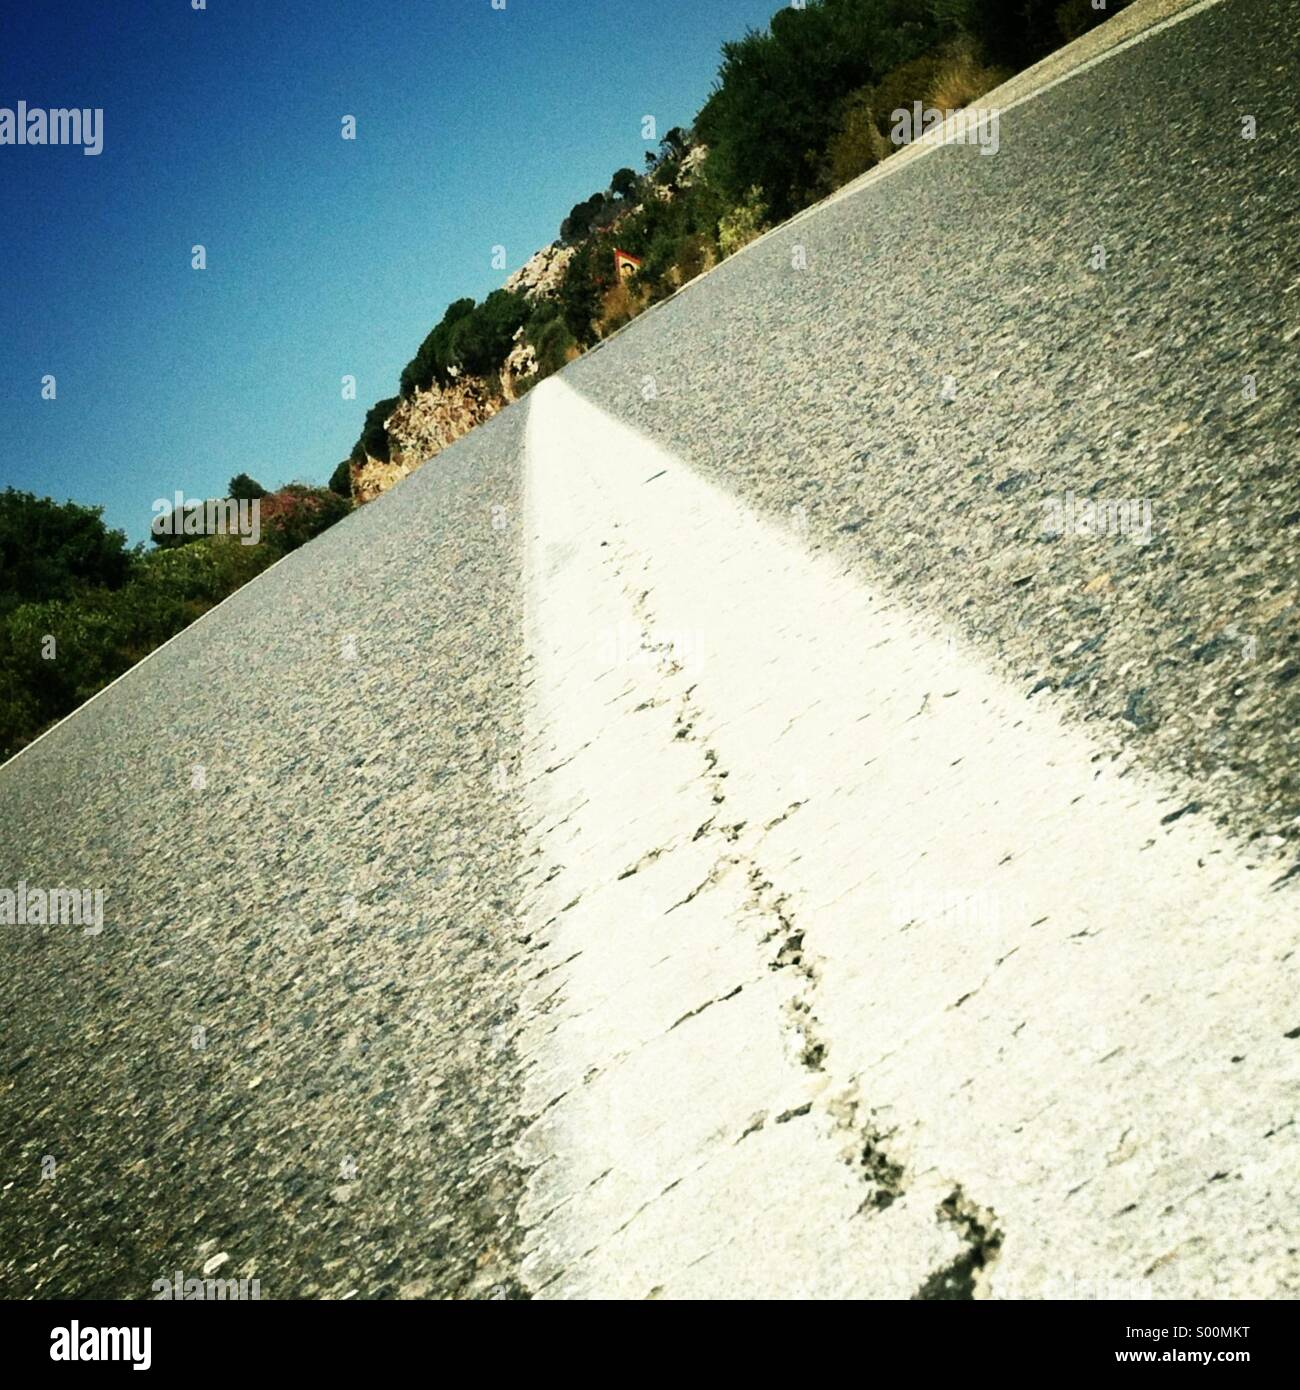 Empty highway. Low angle shot. Square format, iPhoneography. - Stock Image